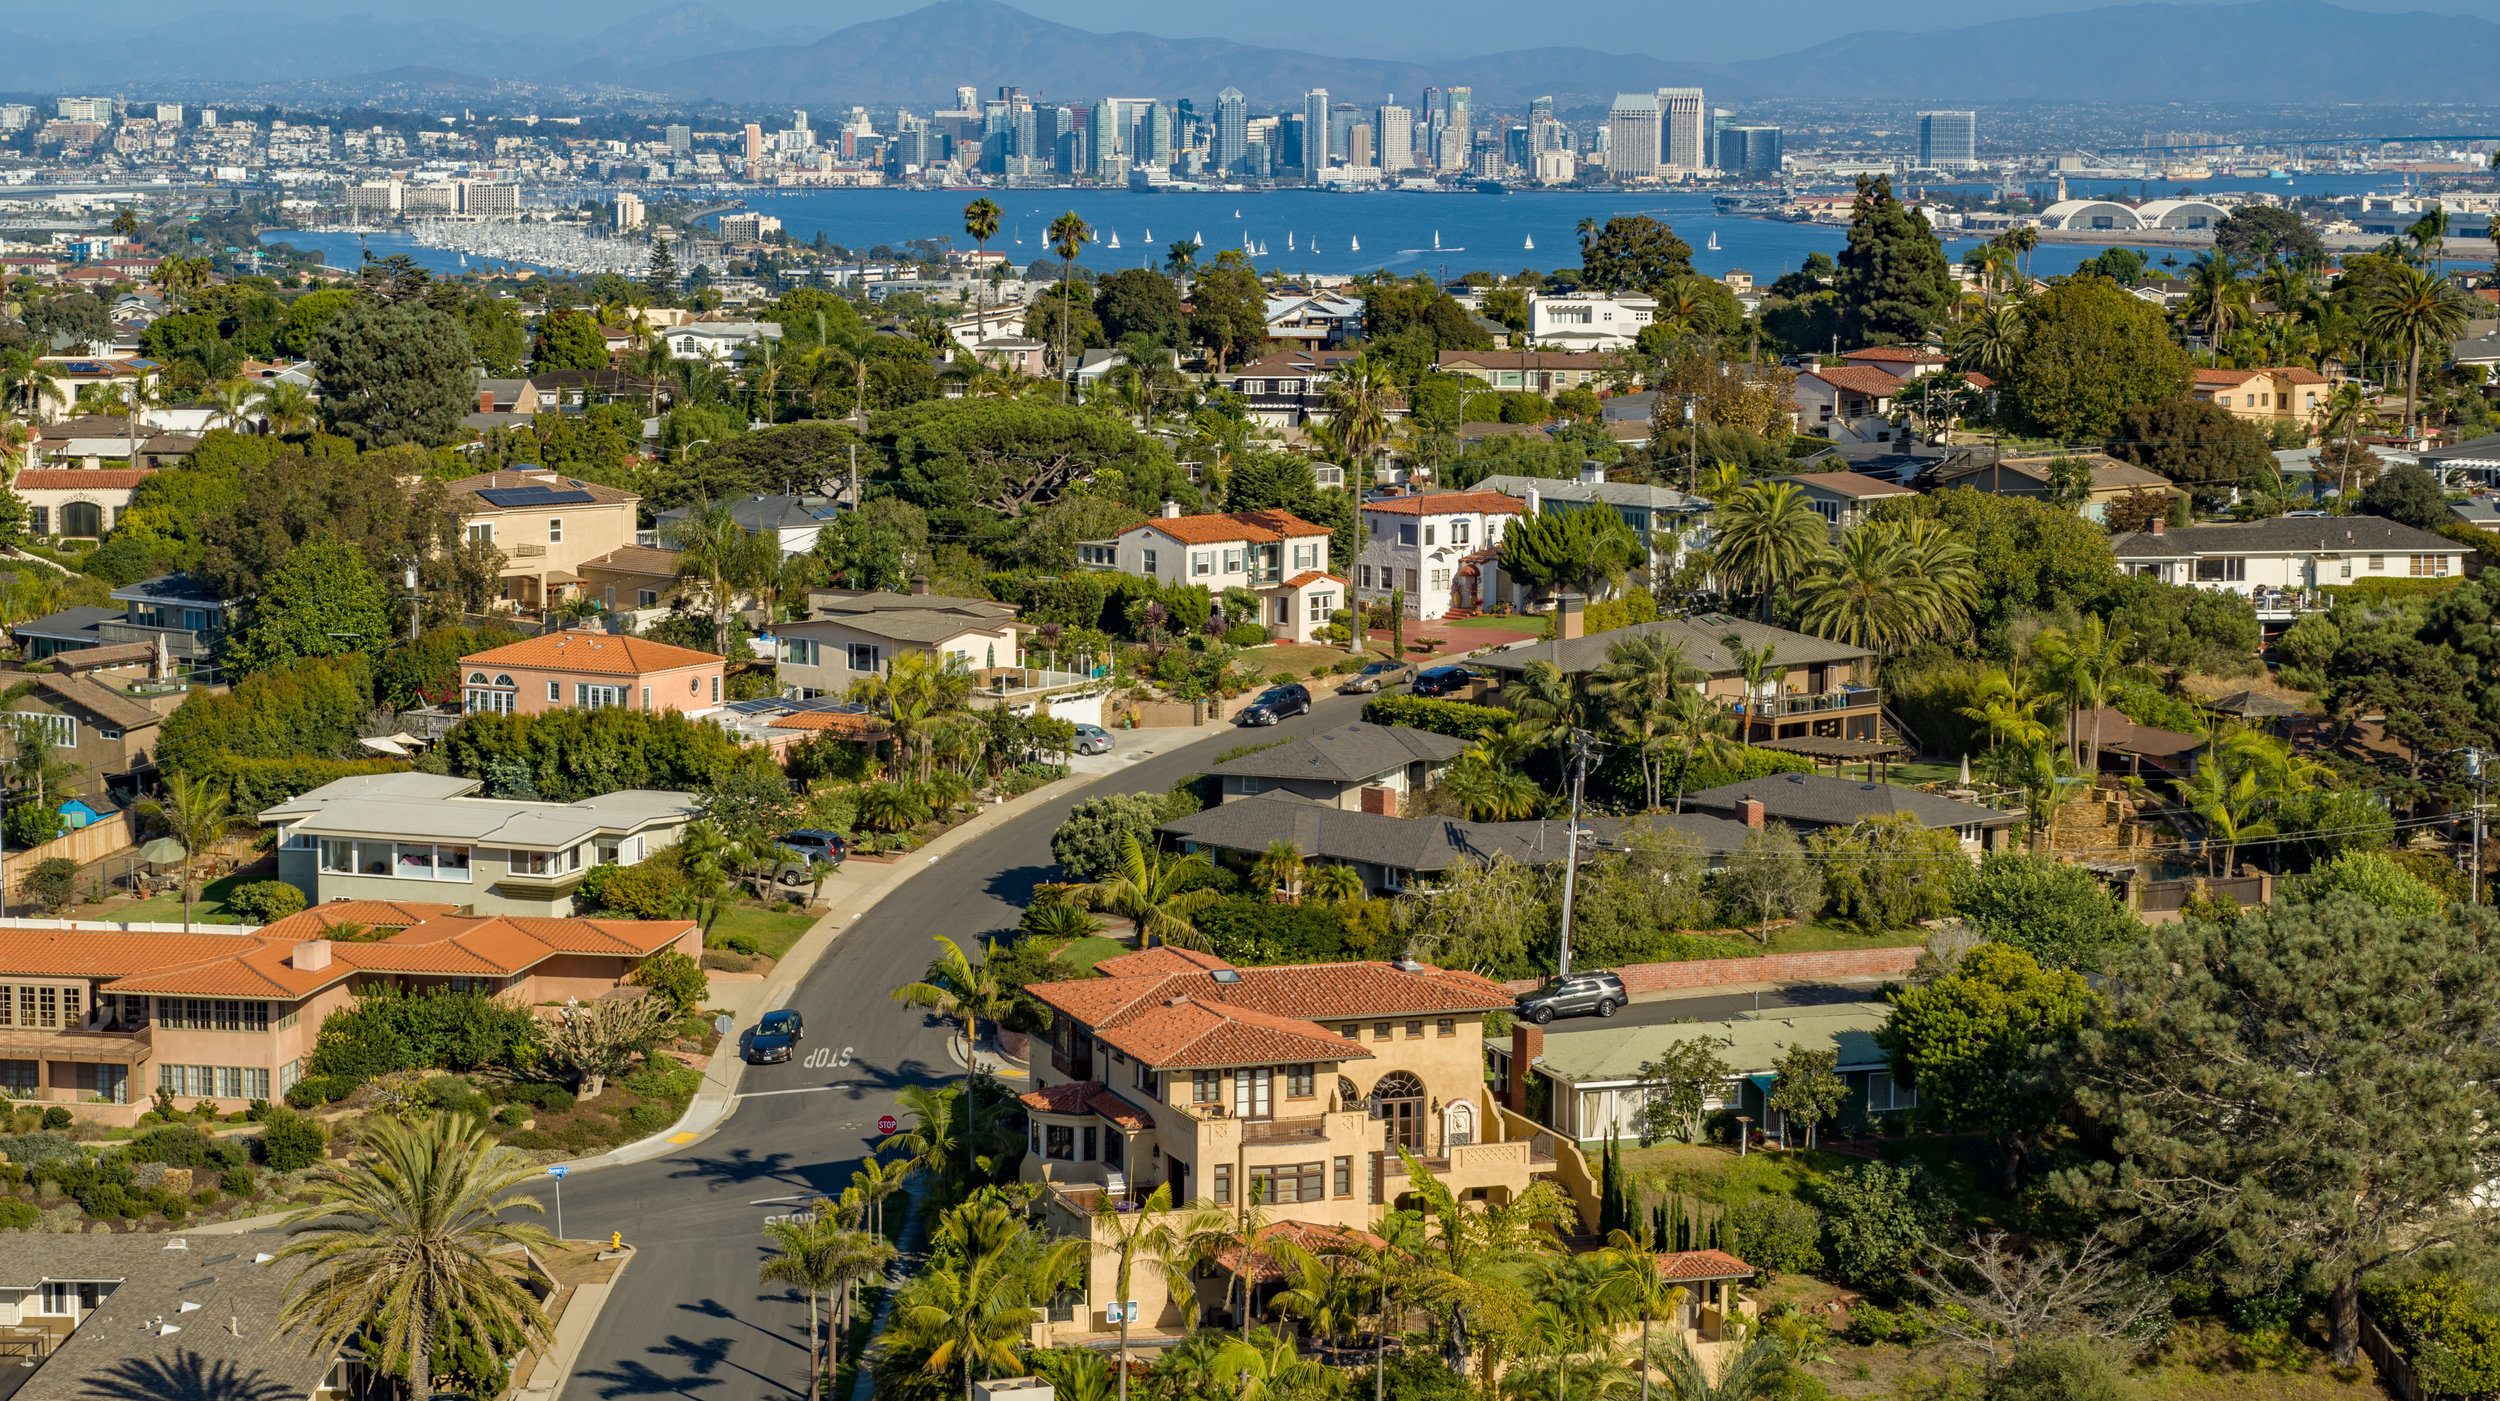 Drone photography of luxury real estate listing in Sunset Cliffs